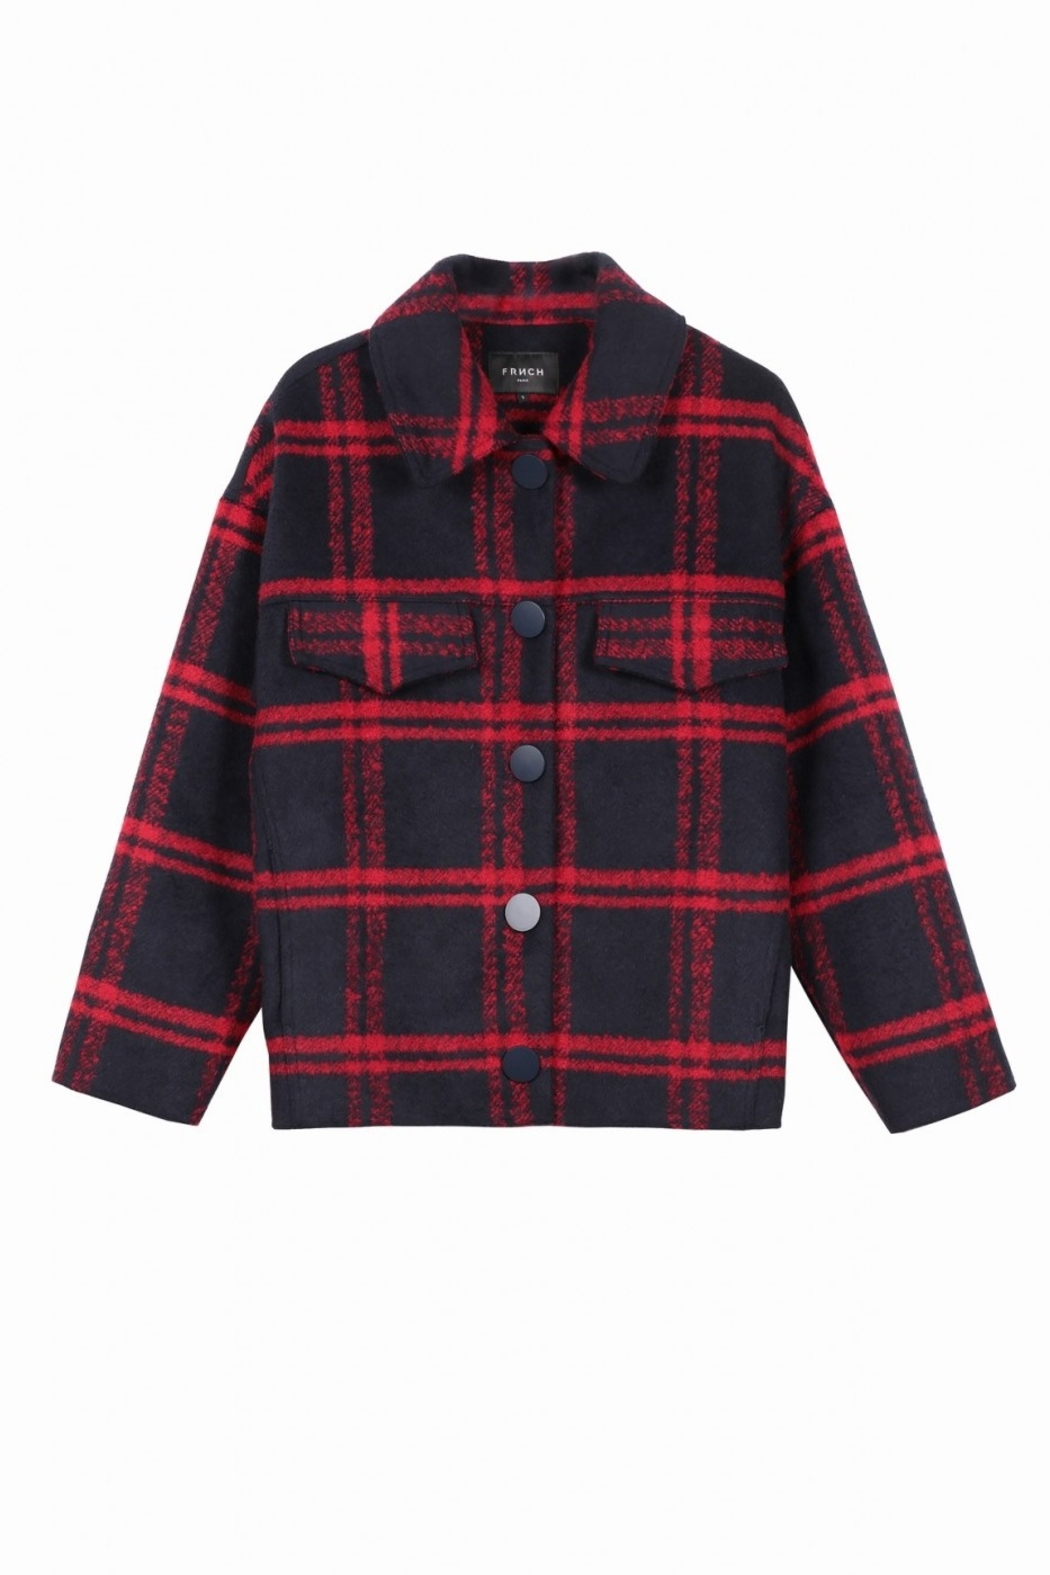 FRNCH Soyra Plaid Jacket - Back Cropped Image